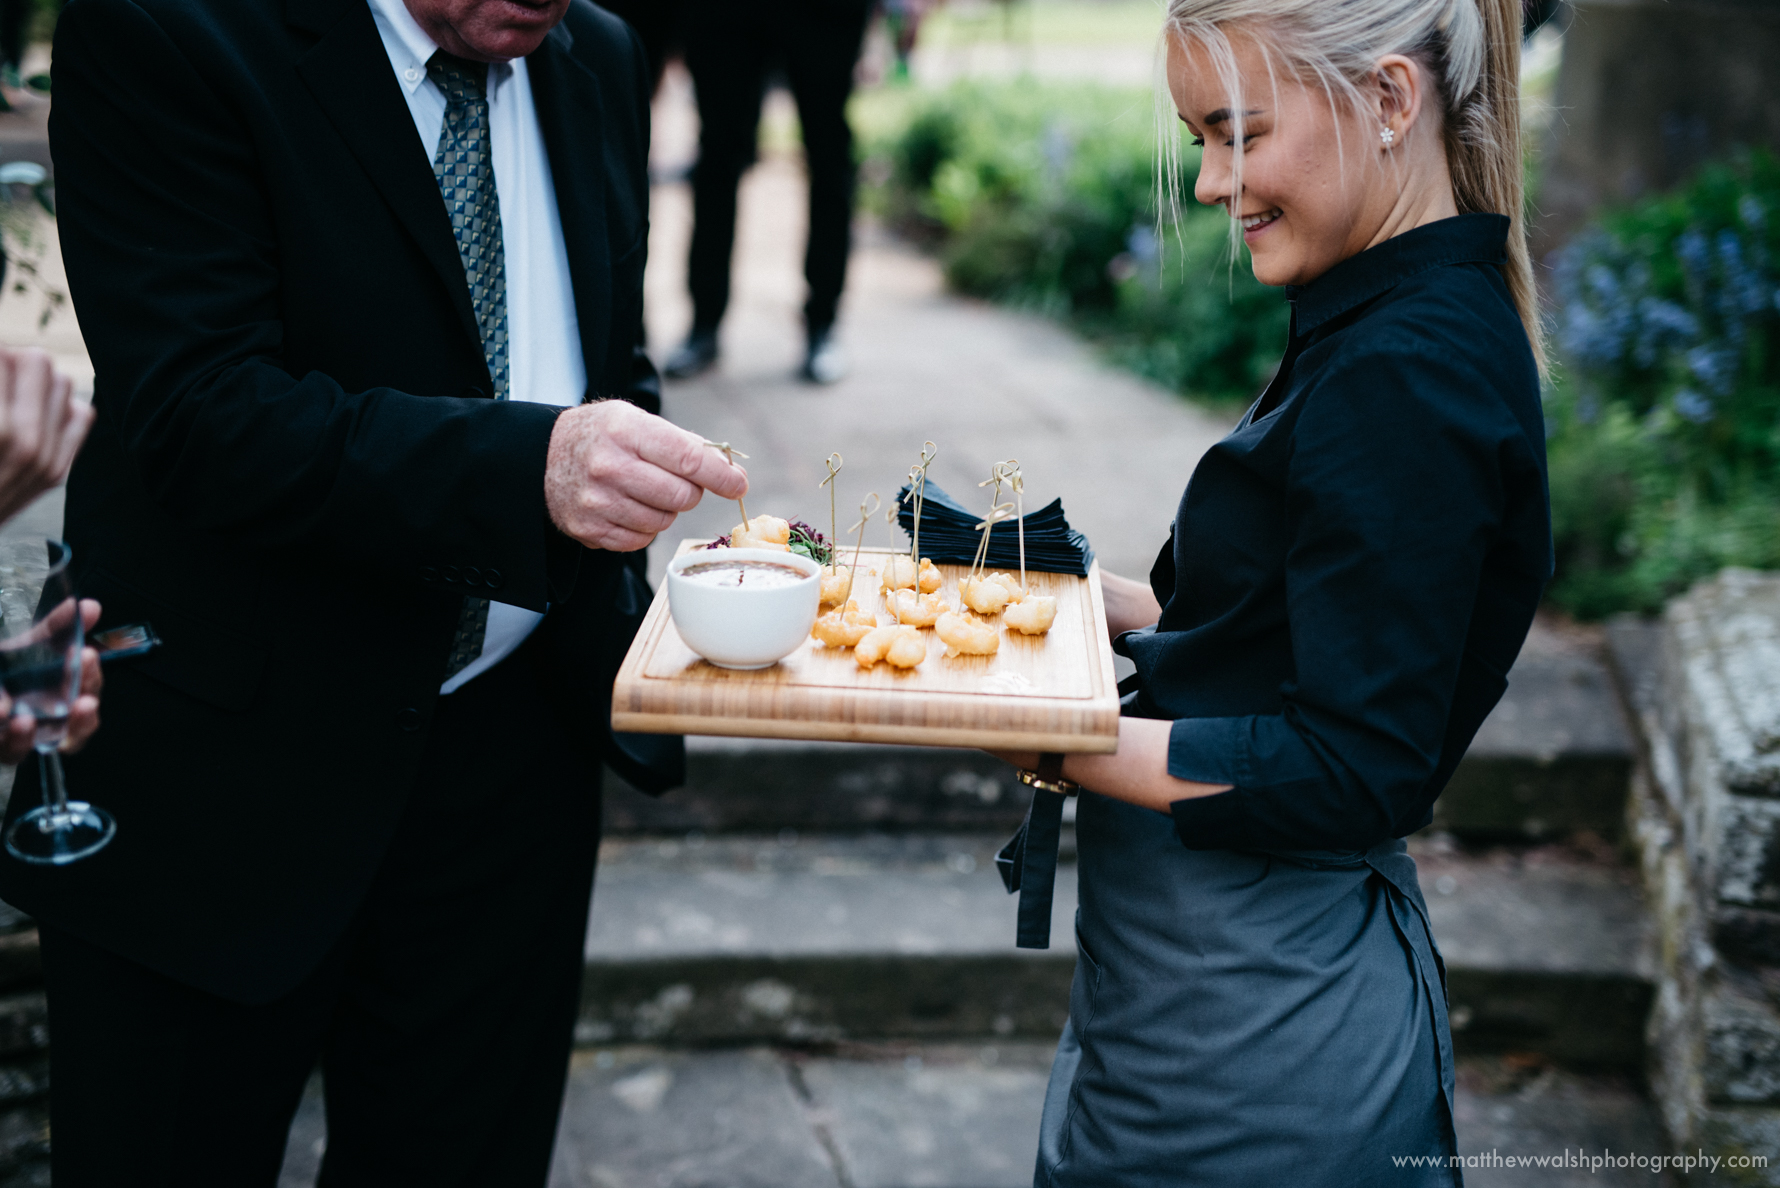 Canapés being served to hungry guests